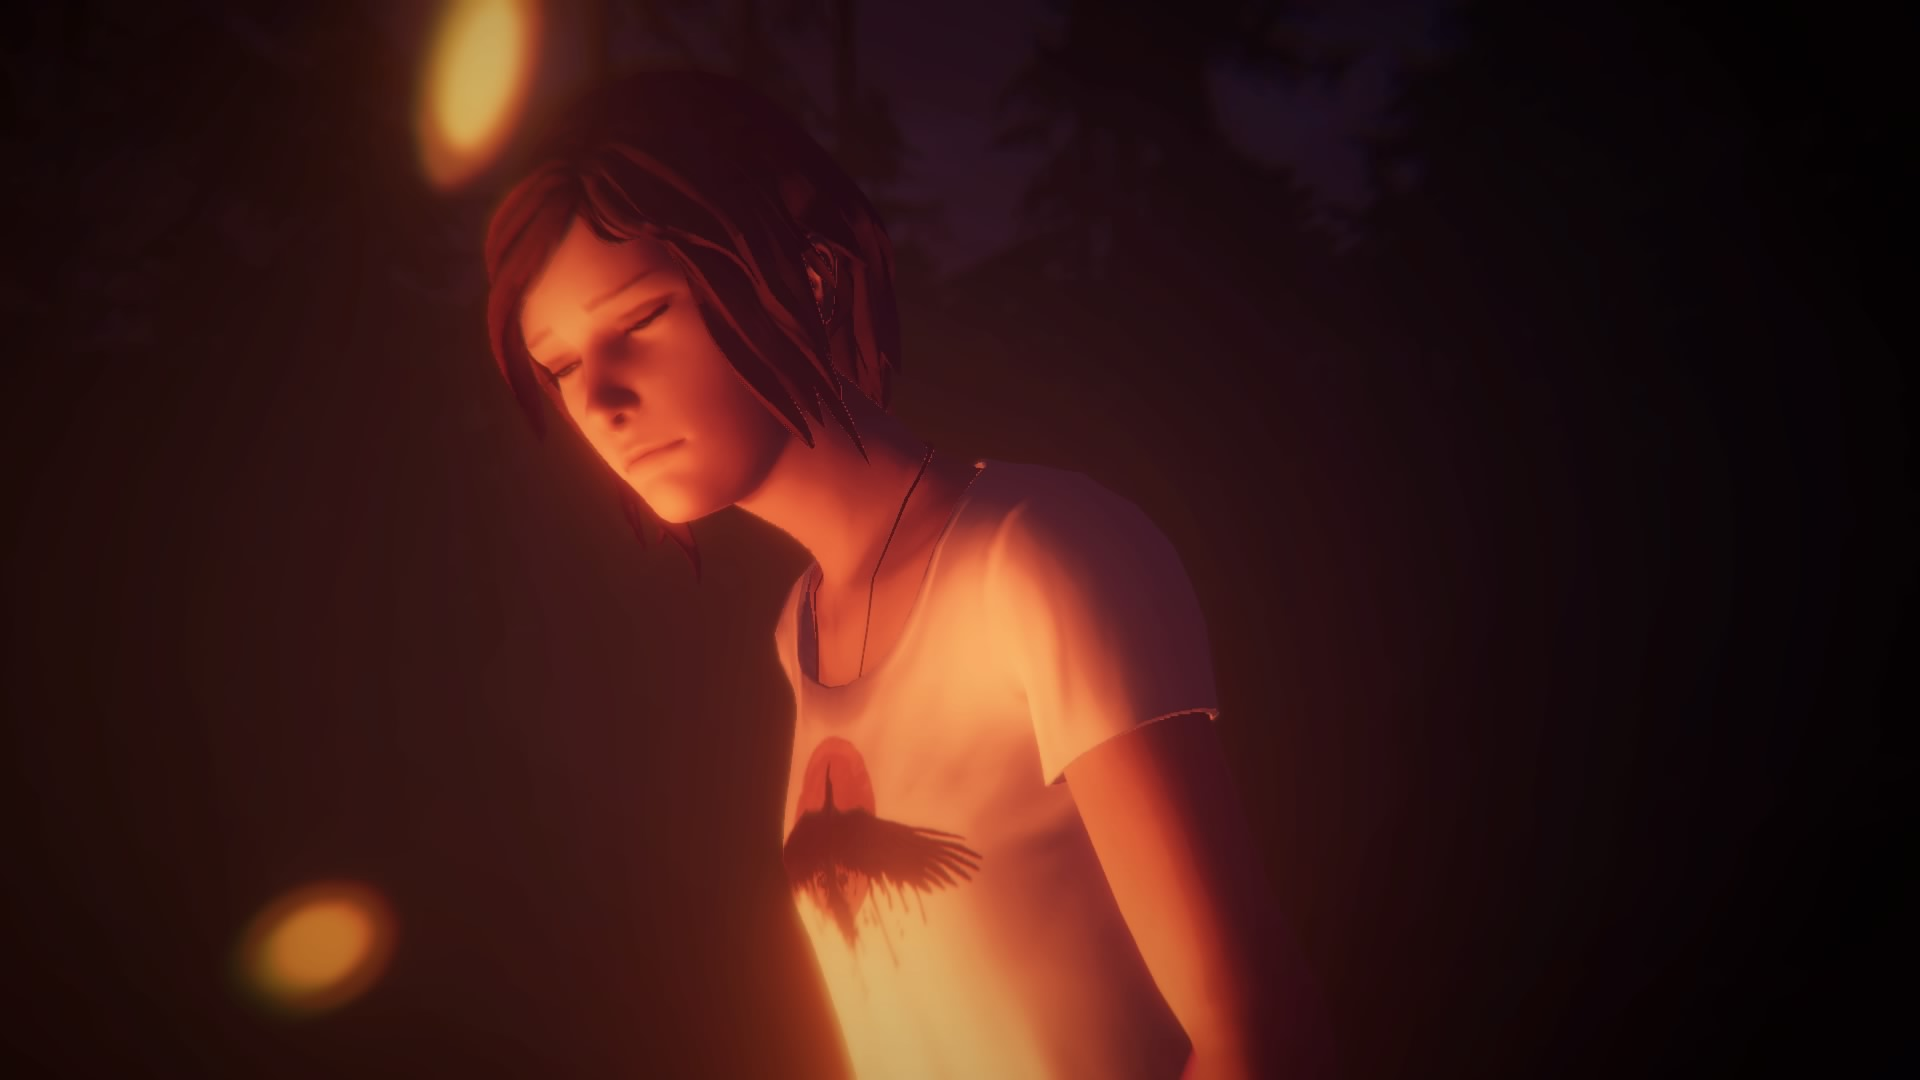 Life is Strange: Before the Storm Episode 3 has a release date